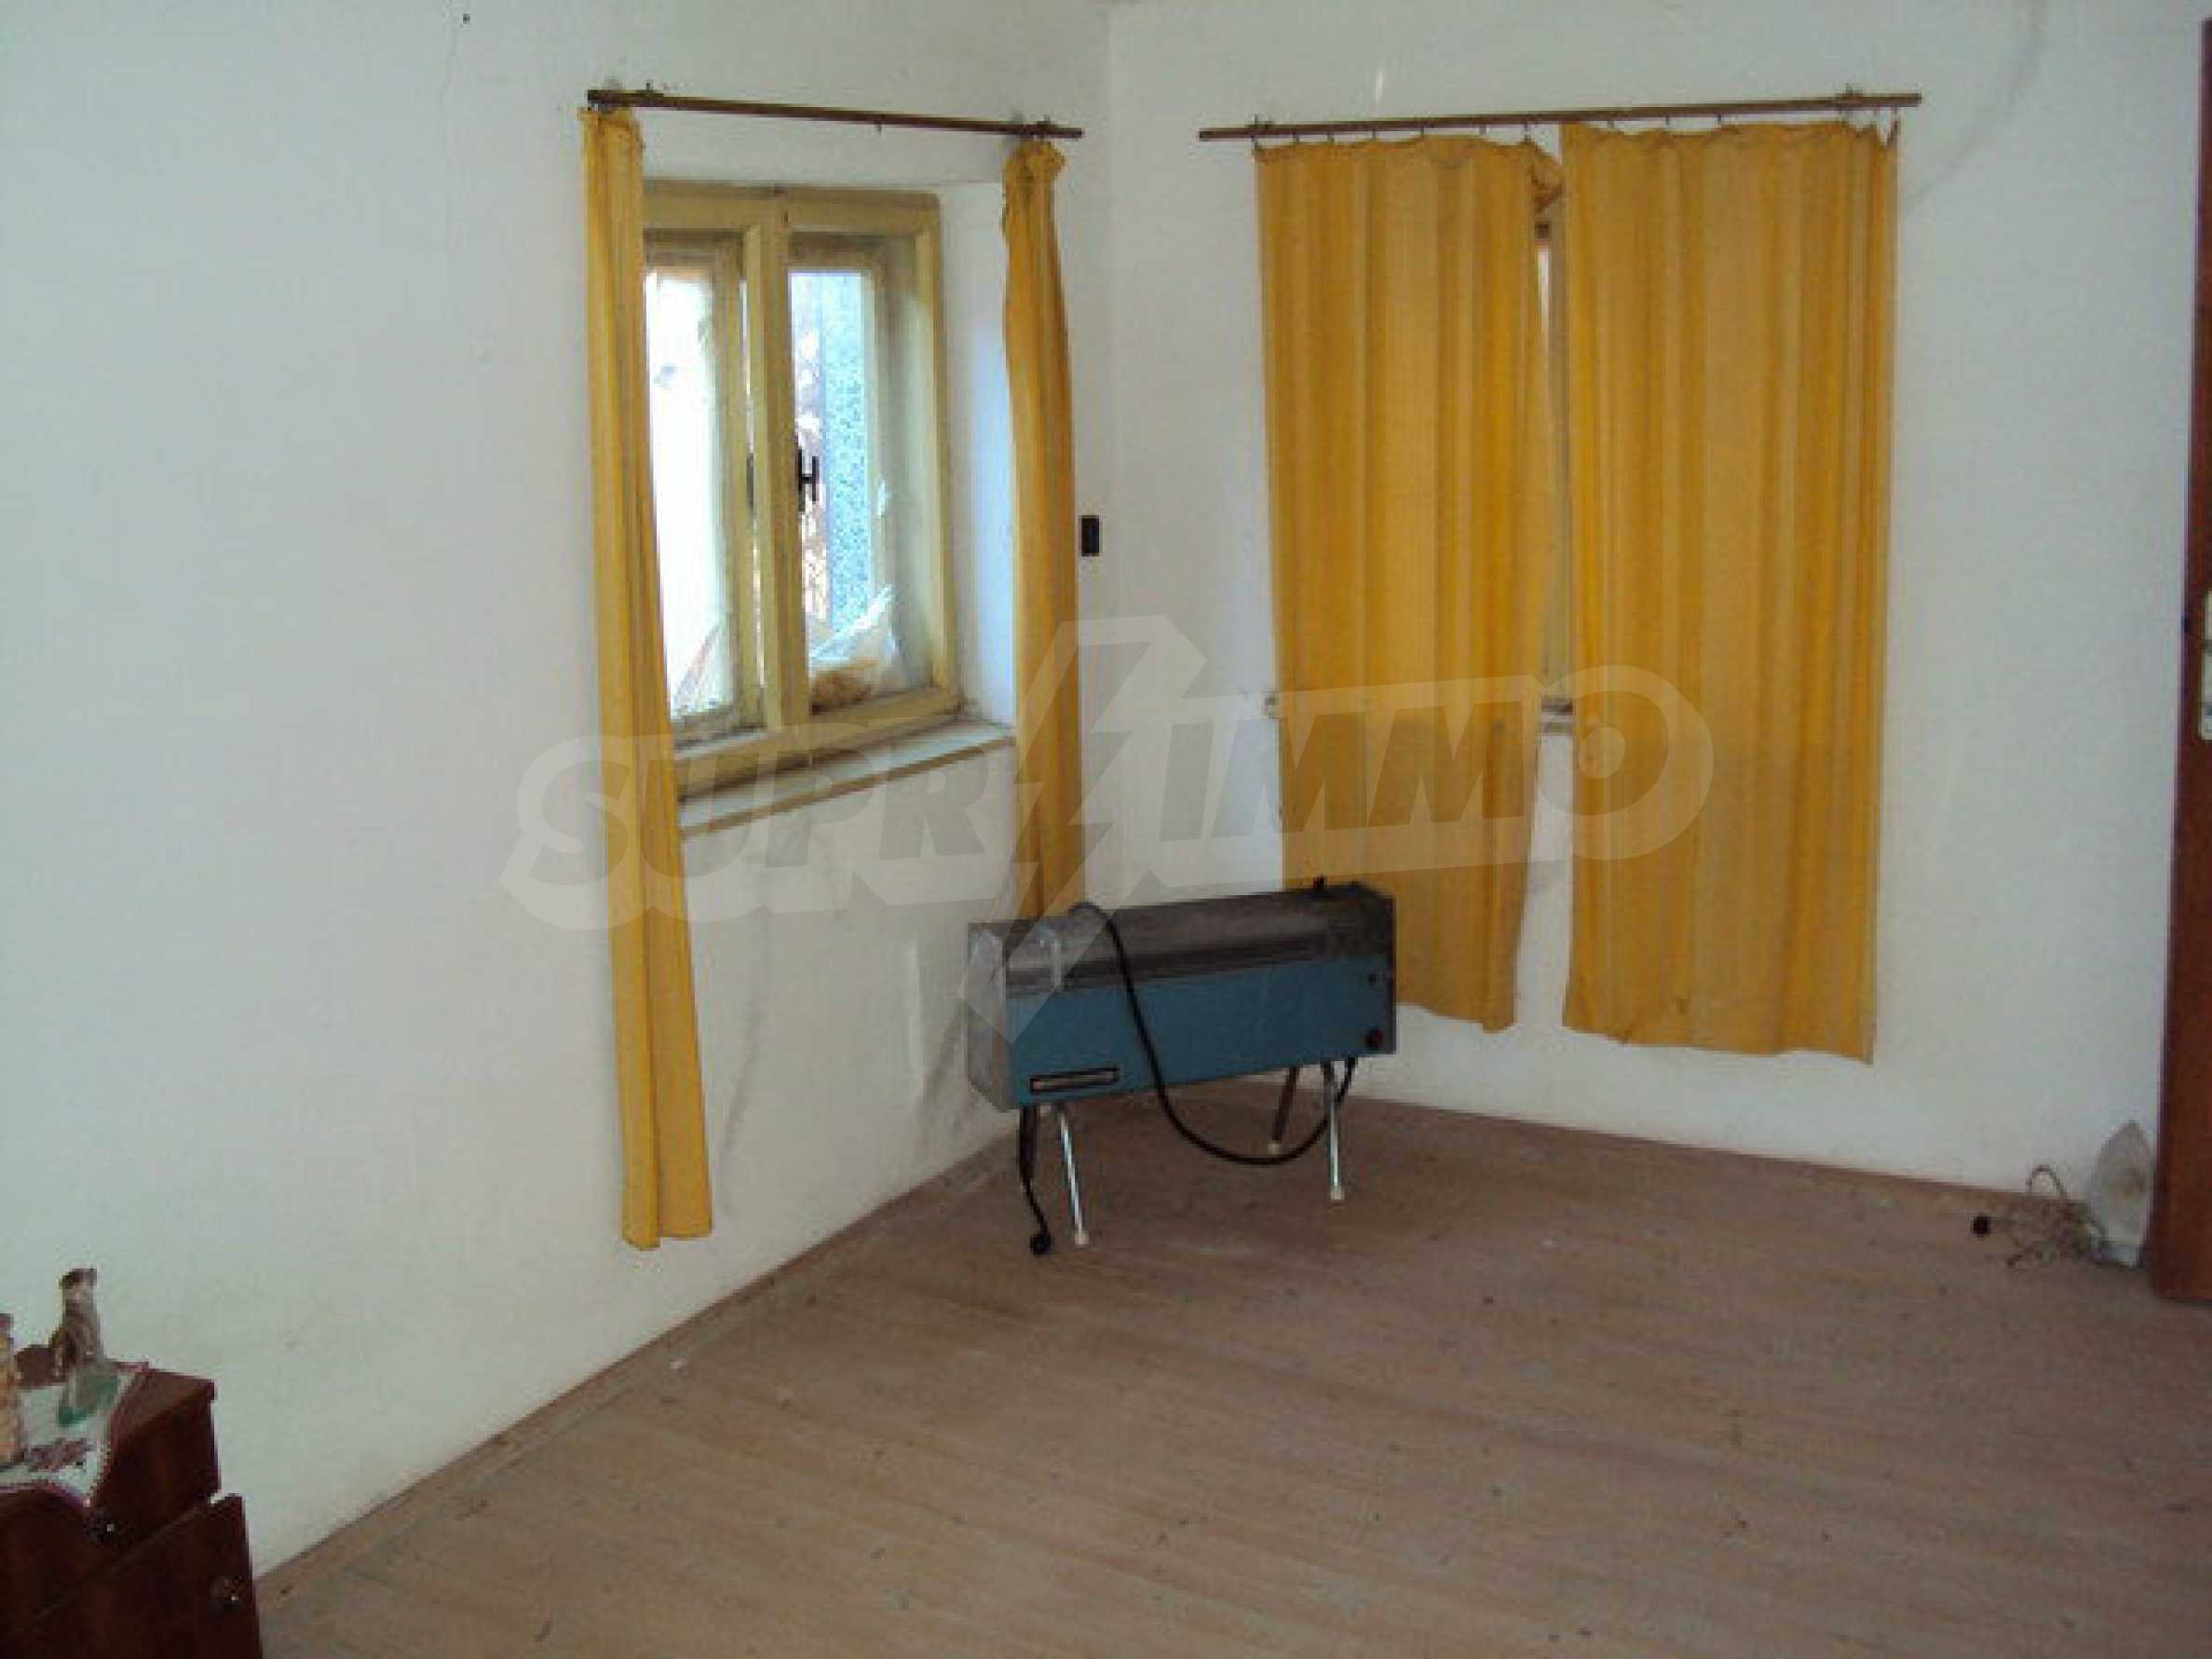 Spacious house in excellent condition in a village 25 km. the old capital of Veliko Tarnovo 39